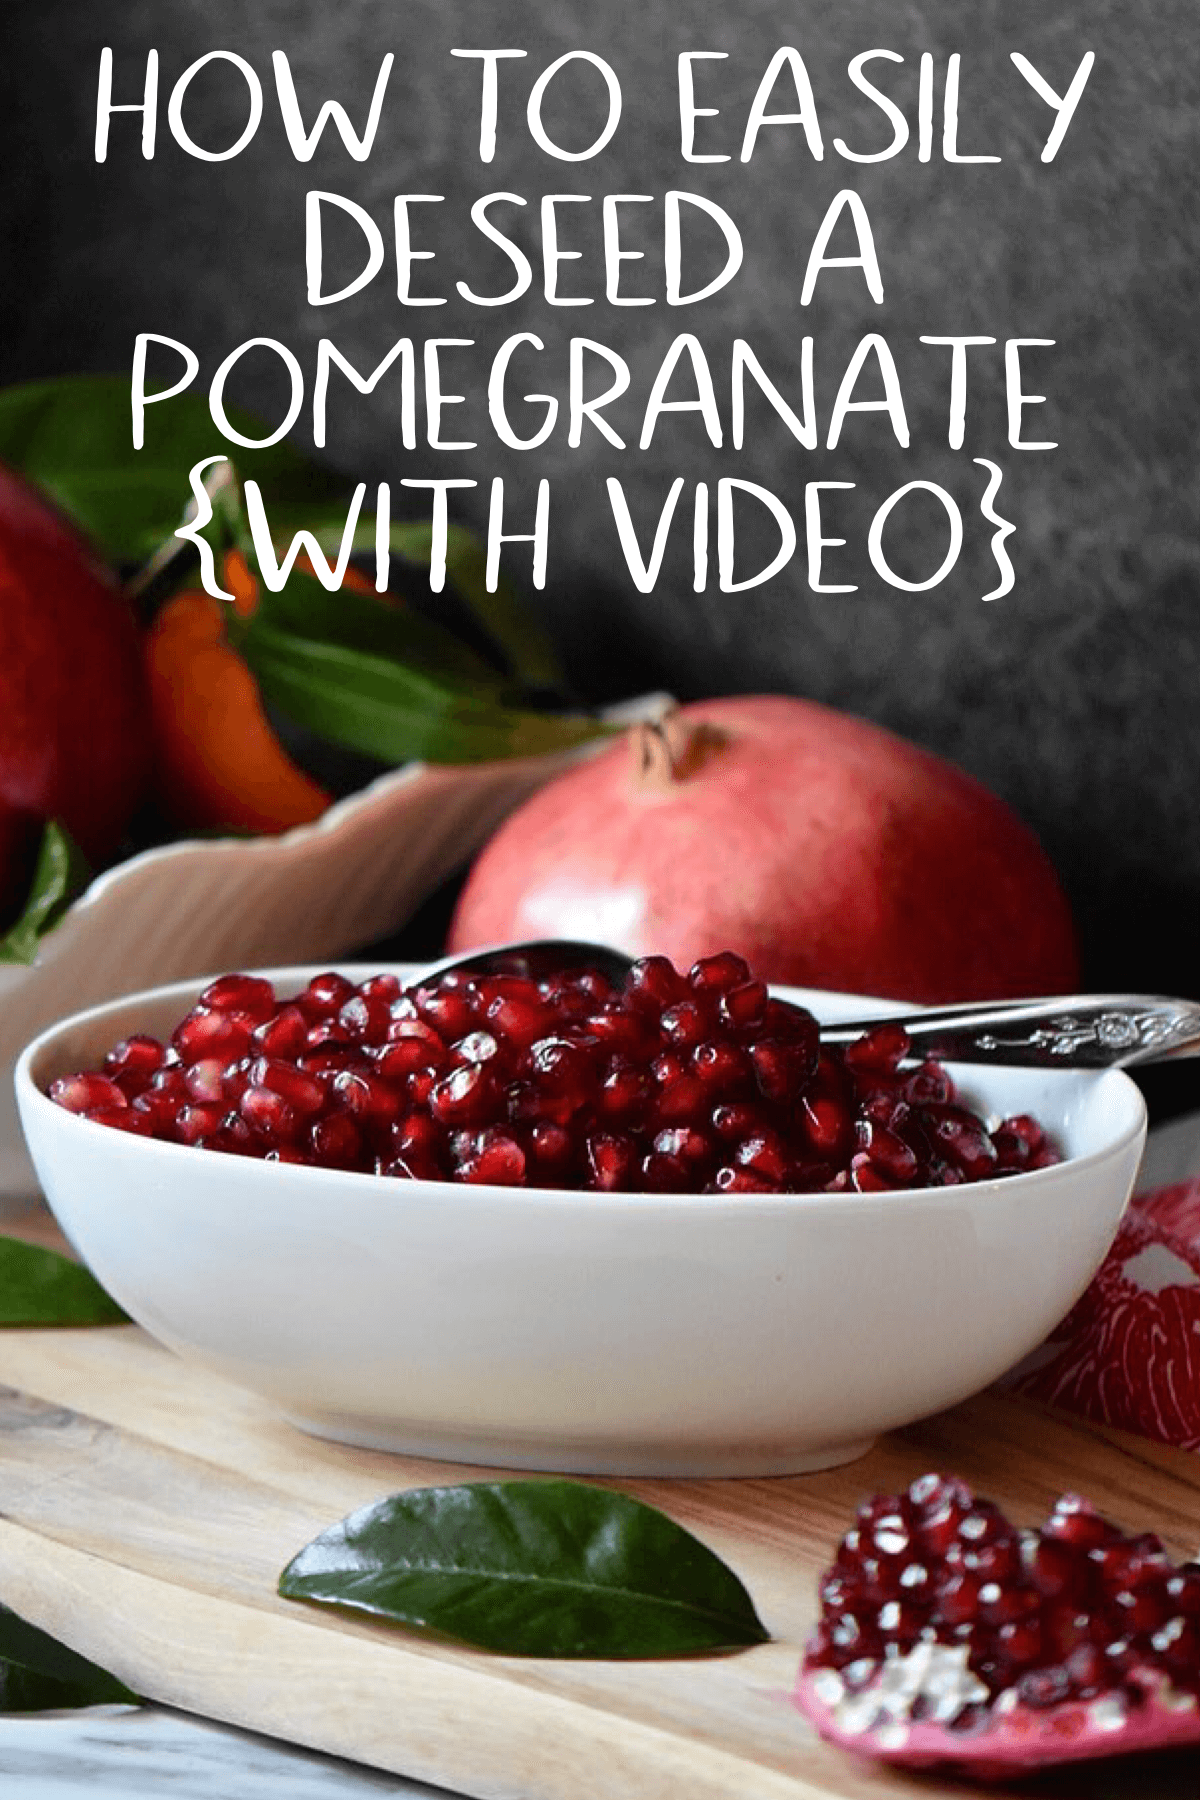 How to Easily Remove Pomegranate Seeds: This will quickly become your go-to method to deseed a pomegranate. #shelovesbiscotti #howto #fallfood #pomegranate  #pomegranate #how to deseed video